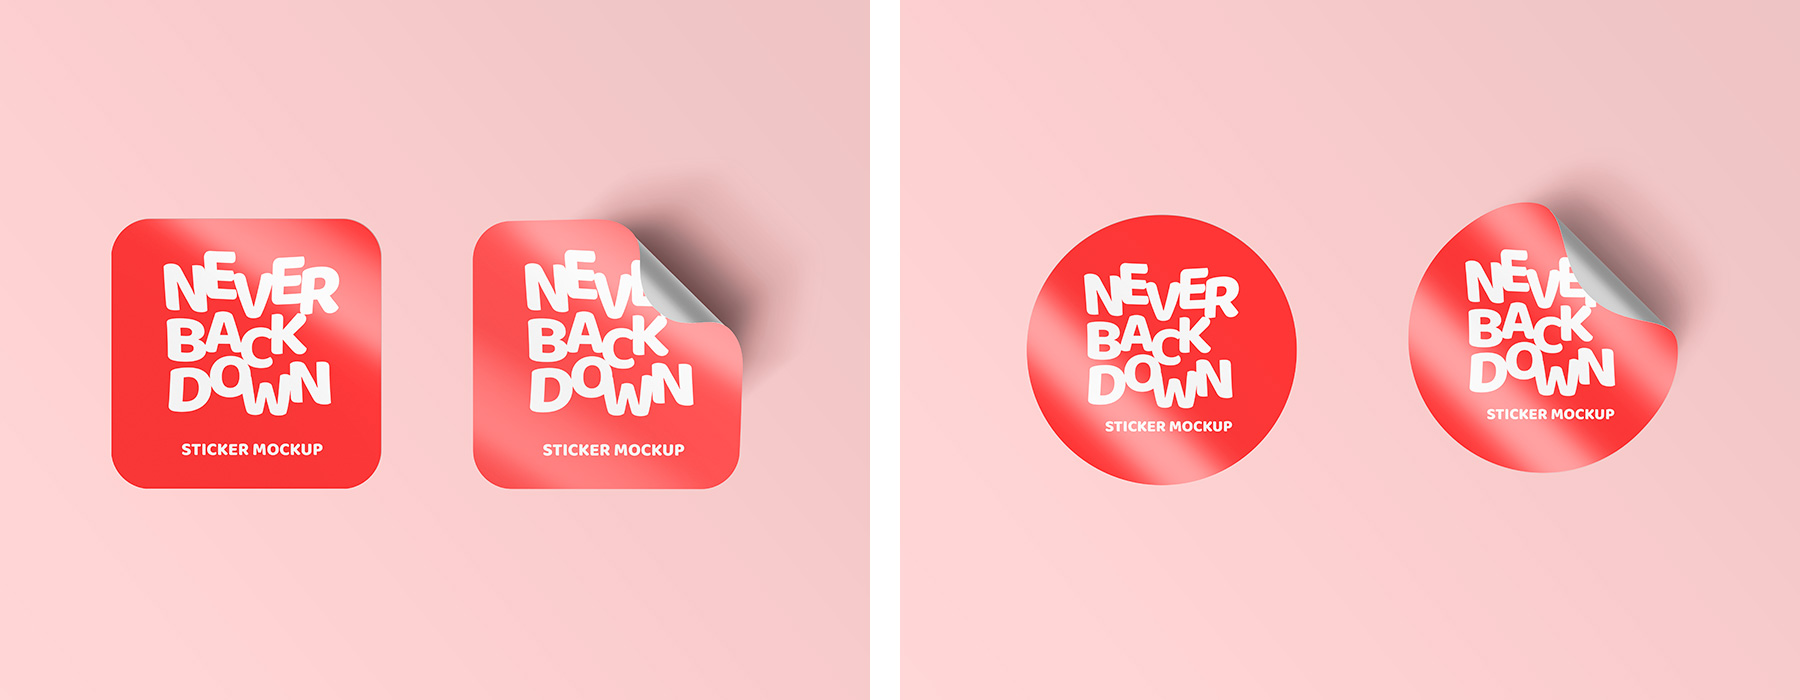 Curled Sticker Mockup PSD Template